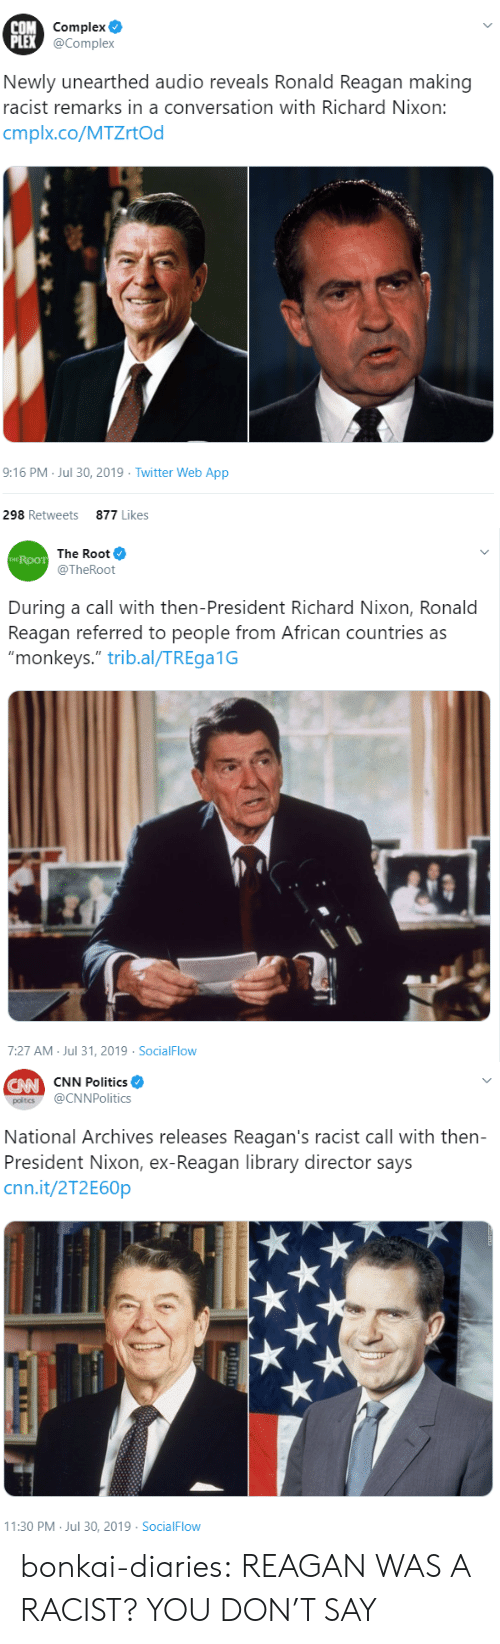 "cnn.com, Complex, and Politics: COM Complex  PLEX @Complex  Newly unearthed audio reveals Ronald Reagan making  racist remarks in a conversation with Richard Nixon:  cmplx.co/MTZrtOd  9:16 PM Jul 30, 2019 Twitter Web App  298 Retweets  877 Likes   The Root  THE ROOT  @TheRoot  During a call with then-President Richard Nixon, Ronald  Reagan referred to people from African countries as  ""monkeys."" trib.al/TREga1G  7:27 AM Jul 31, 2019 SocialFlow   CW CNN Politics  @CNNPolitics  poltics  National Archives releases Reagan's racist call with then-  President Nixon, ex-Reagan library director says  cnn.it/2T2E60P  11:30 PM Jul 30, 2019 SocialFlow bonkai-diaries:  REAGAN WAS A RACIST? YOU DON'T SAY"